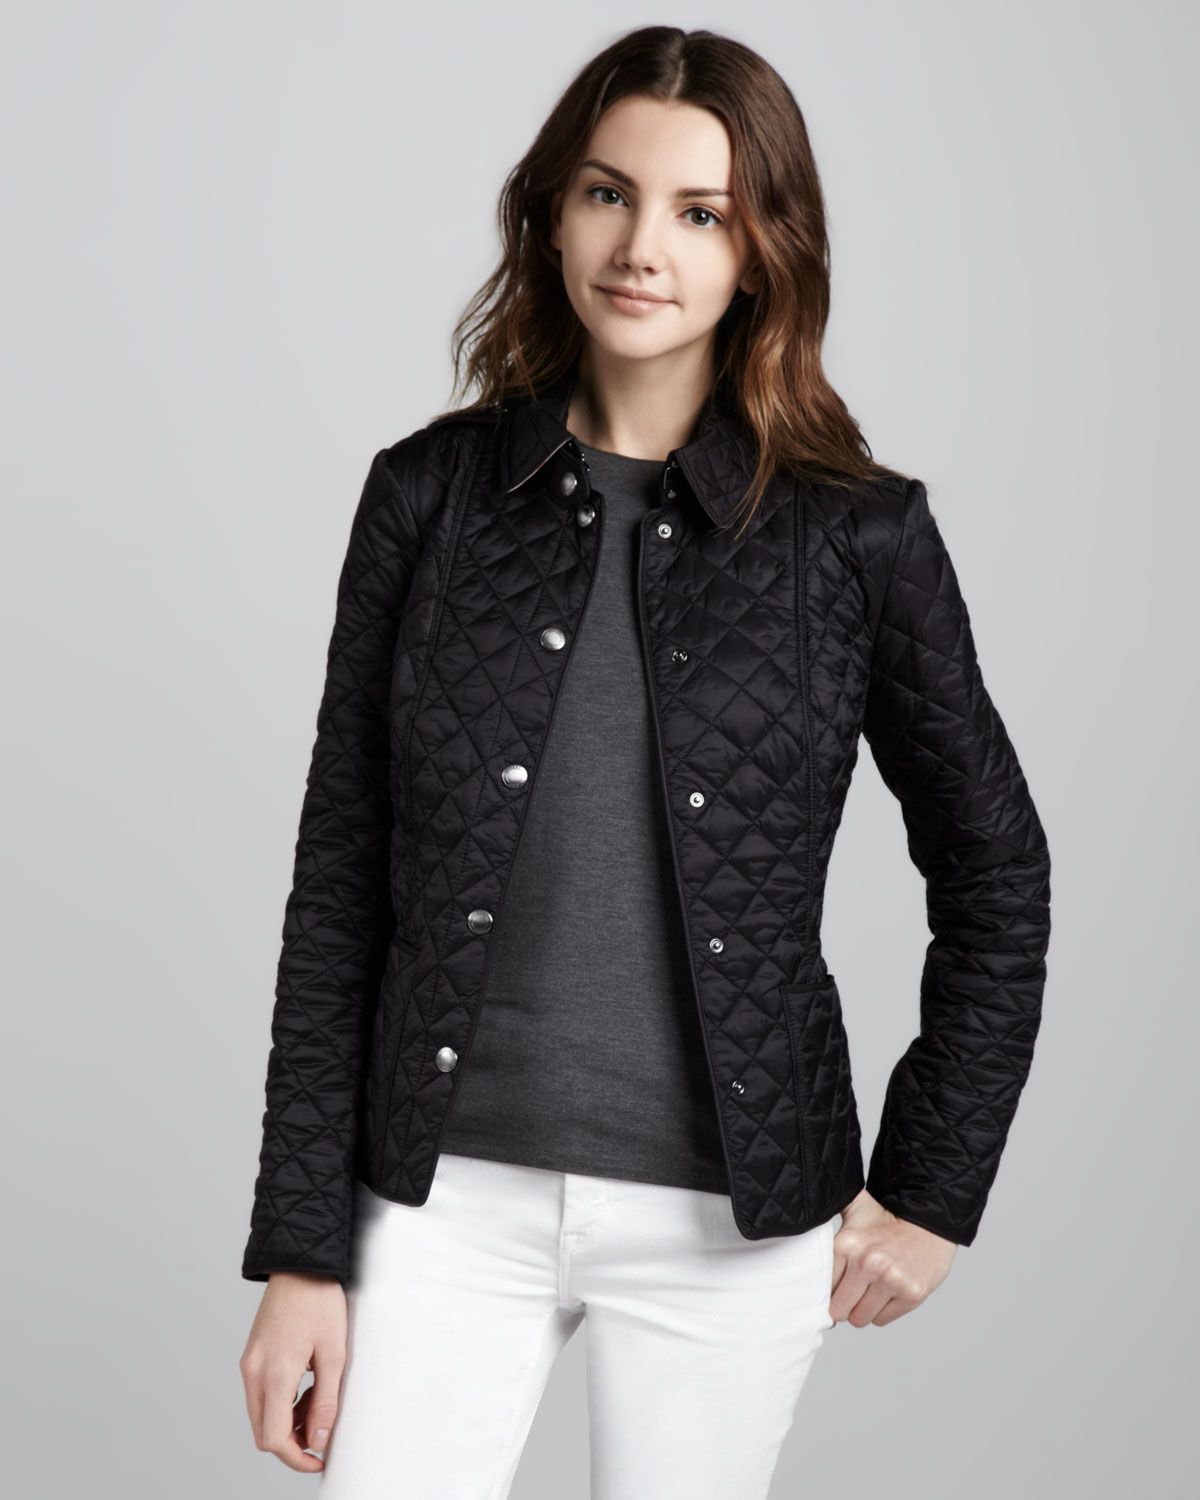 Burberry Brit Heritage Quilted Jacket | Fashion Finds | Pinterest ... : diamond quilted jacket burberry - Adamdwight.com